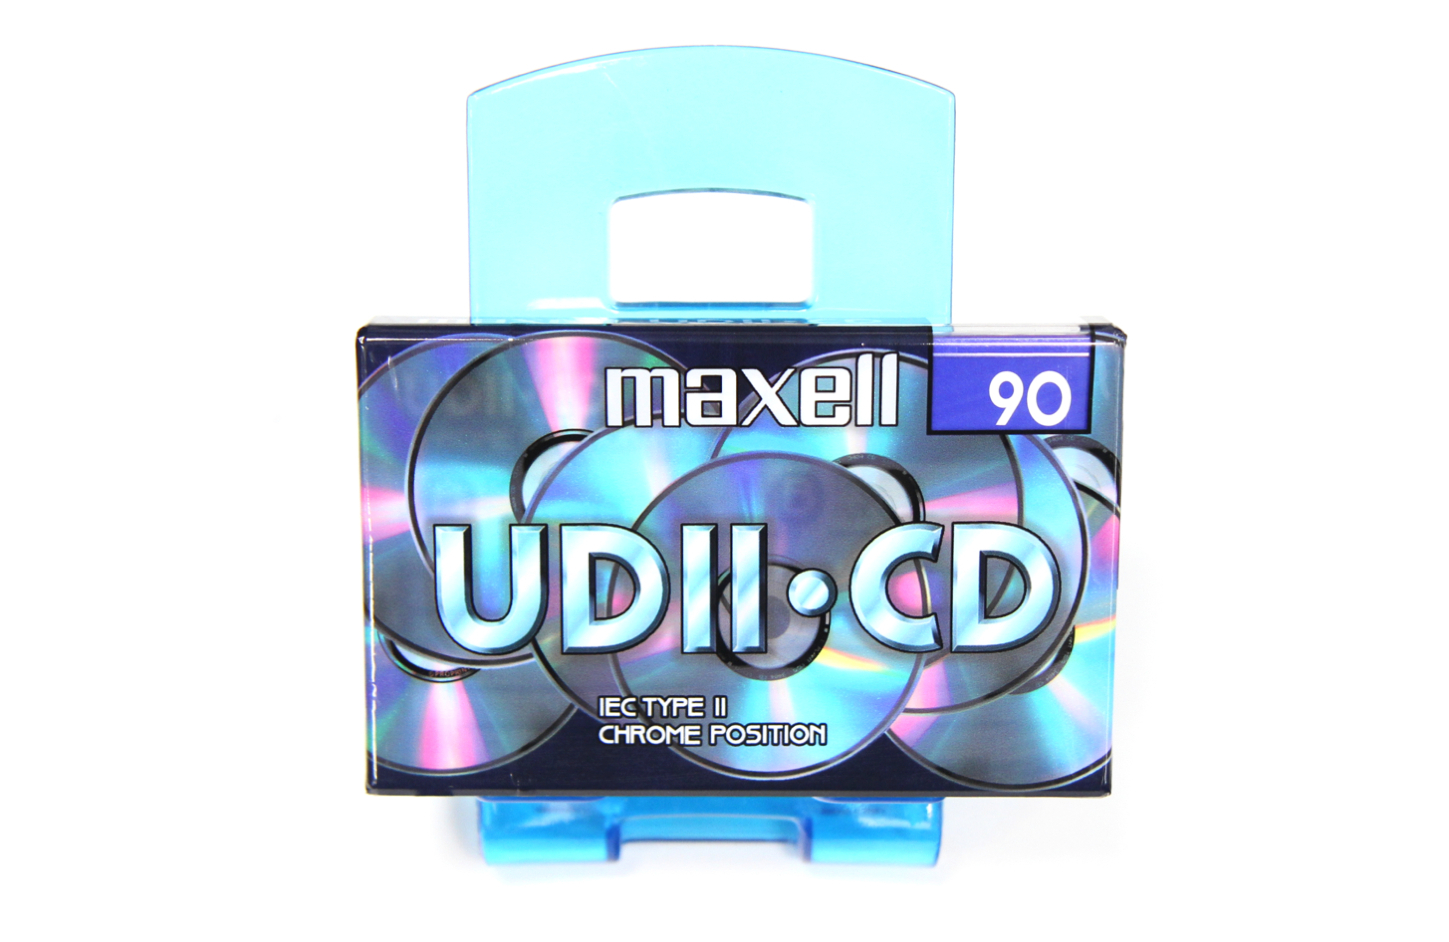 MAXELL UDII-90 Position Chrome